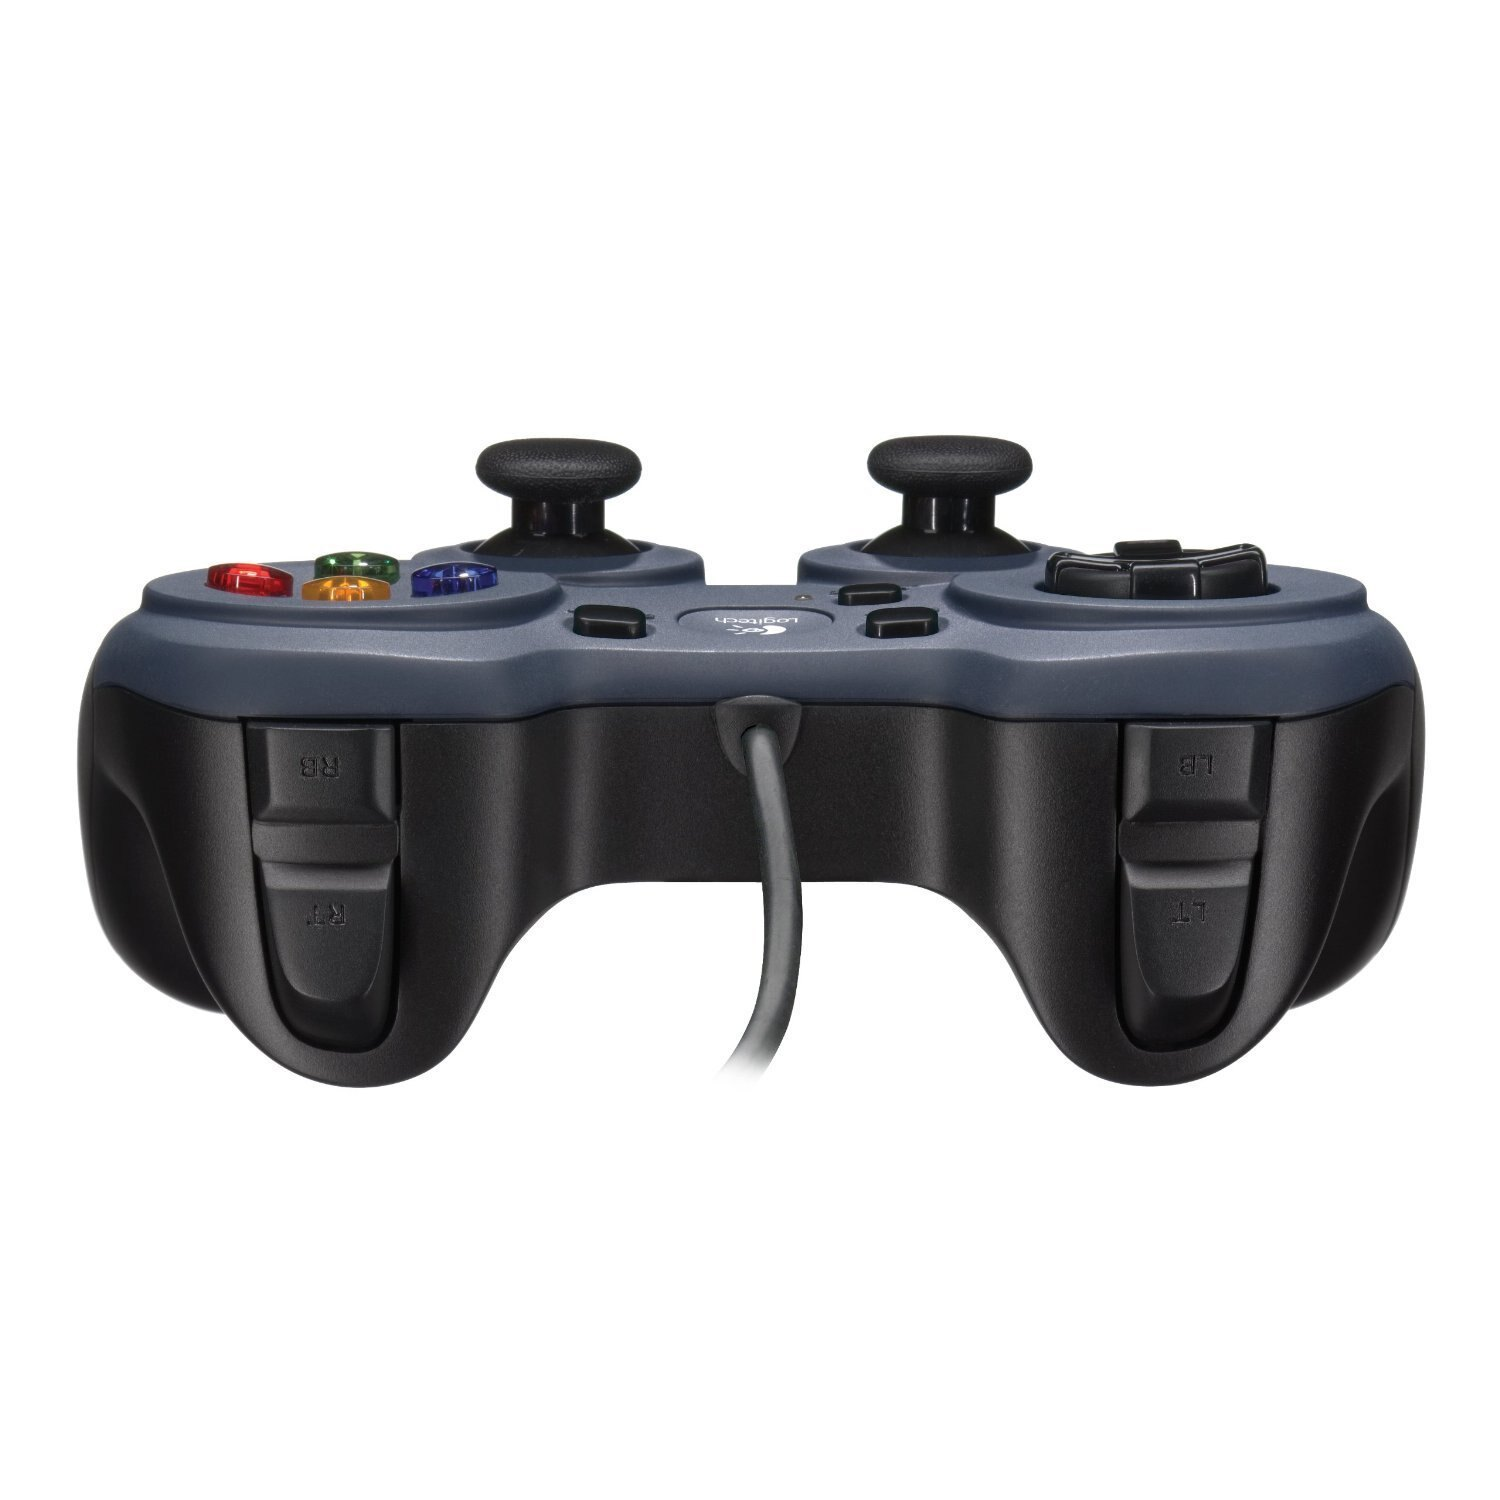 Logitech Gamepad F310 USB Wired PC Controller 940-000110 2